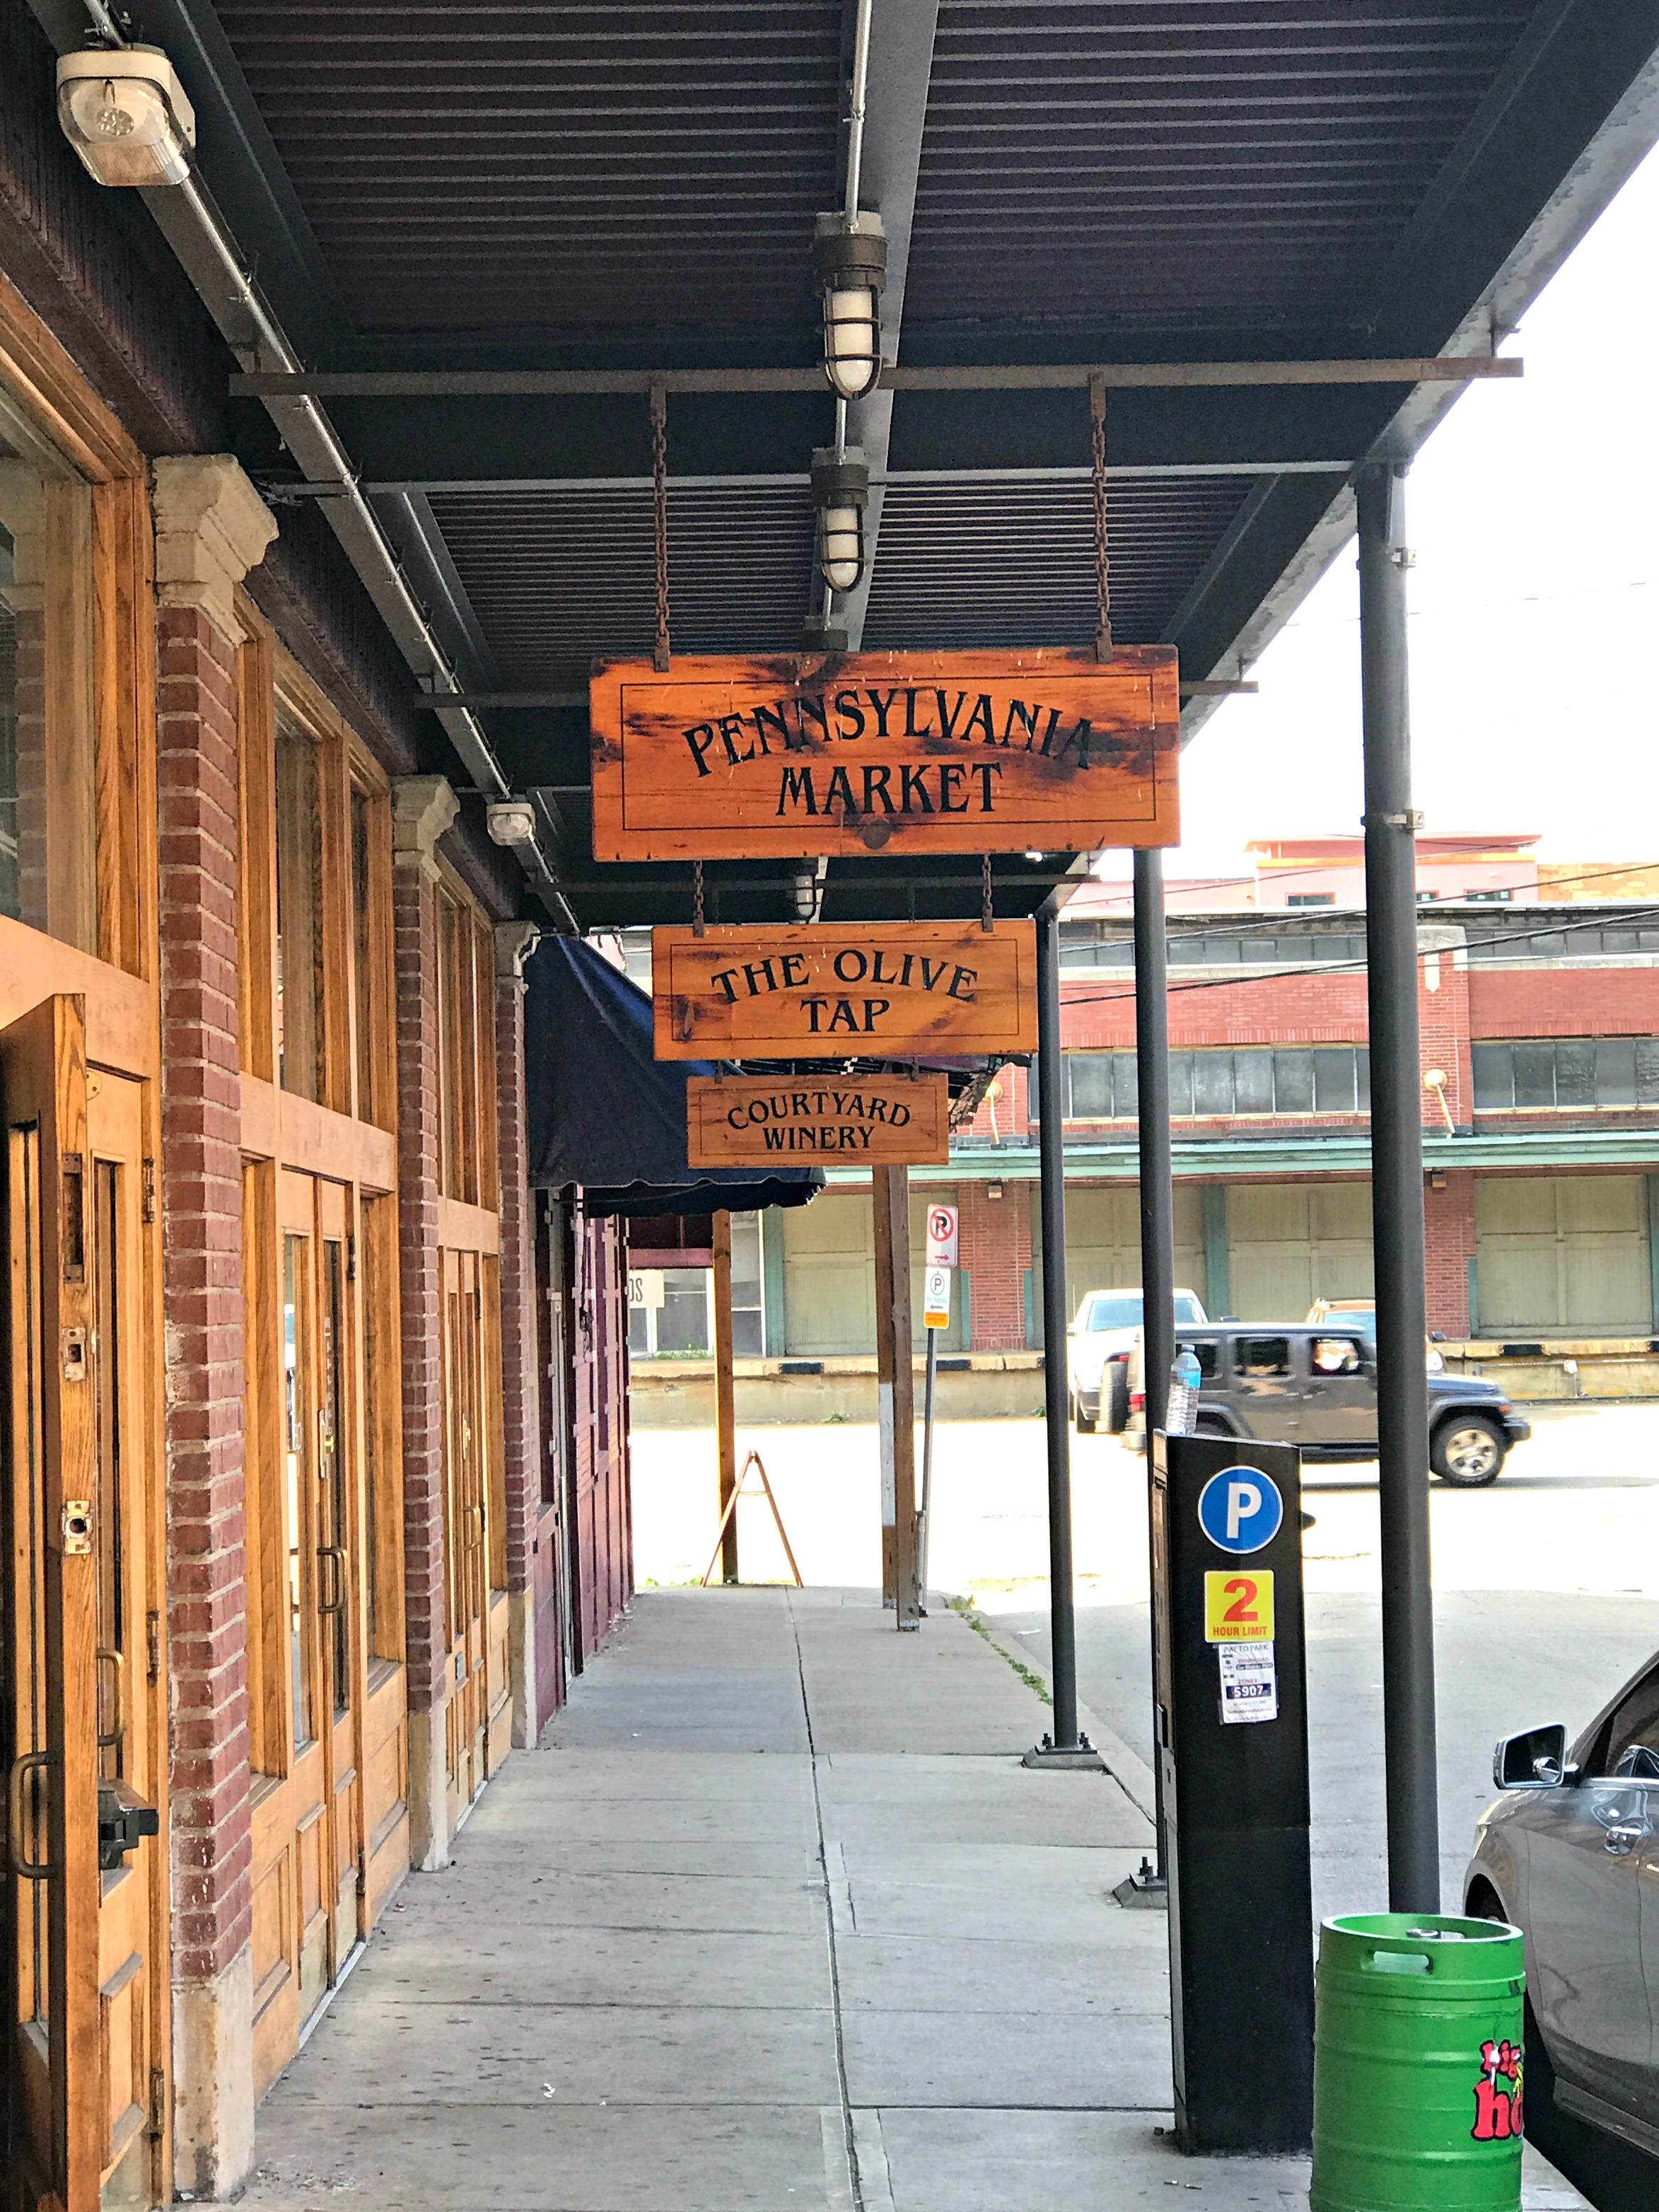 strip5.jpg Jonathan Moran Woodworks, East End Brewing, The Olive Tap and Courtyard Winery occupy 108 19th Street.